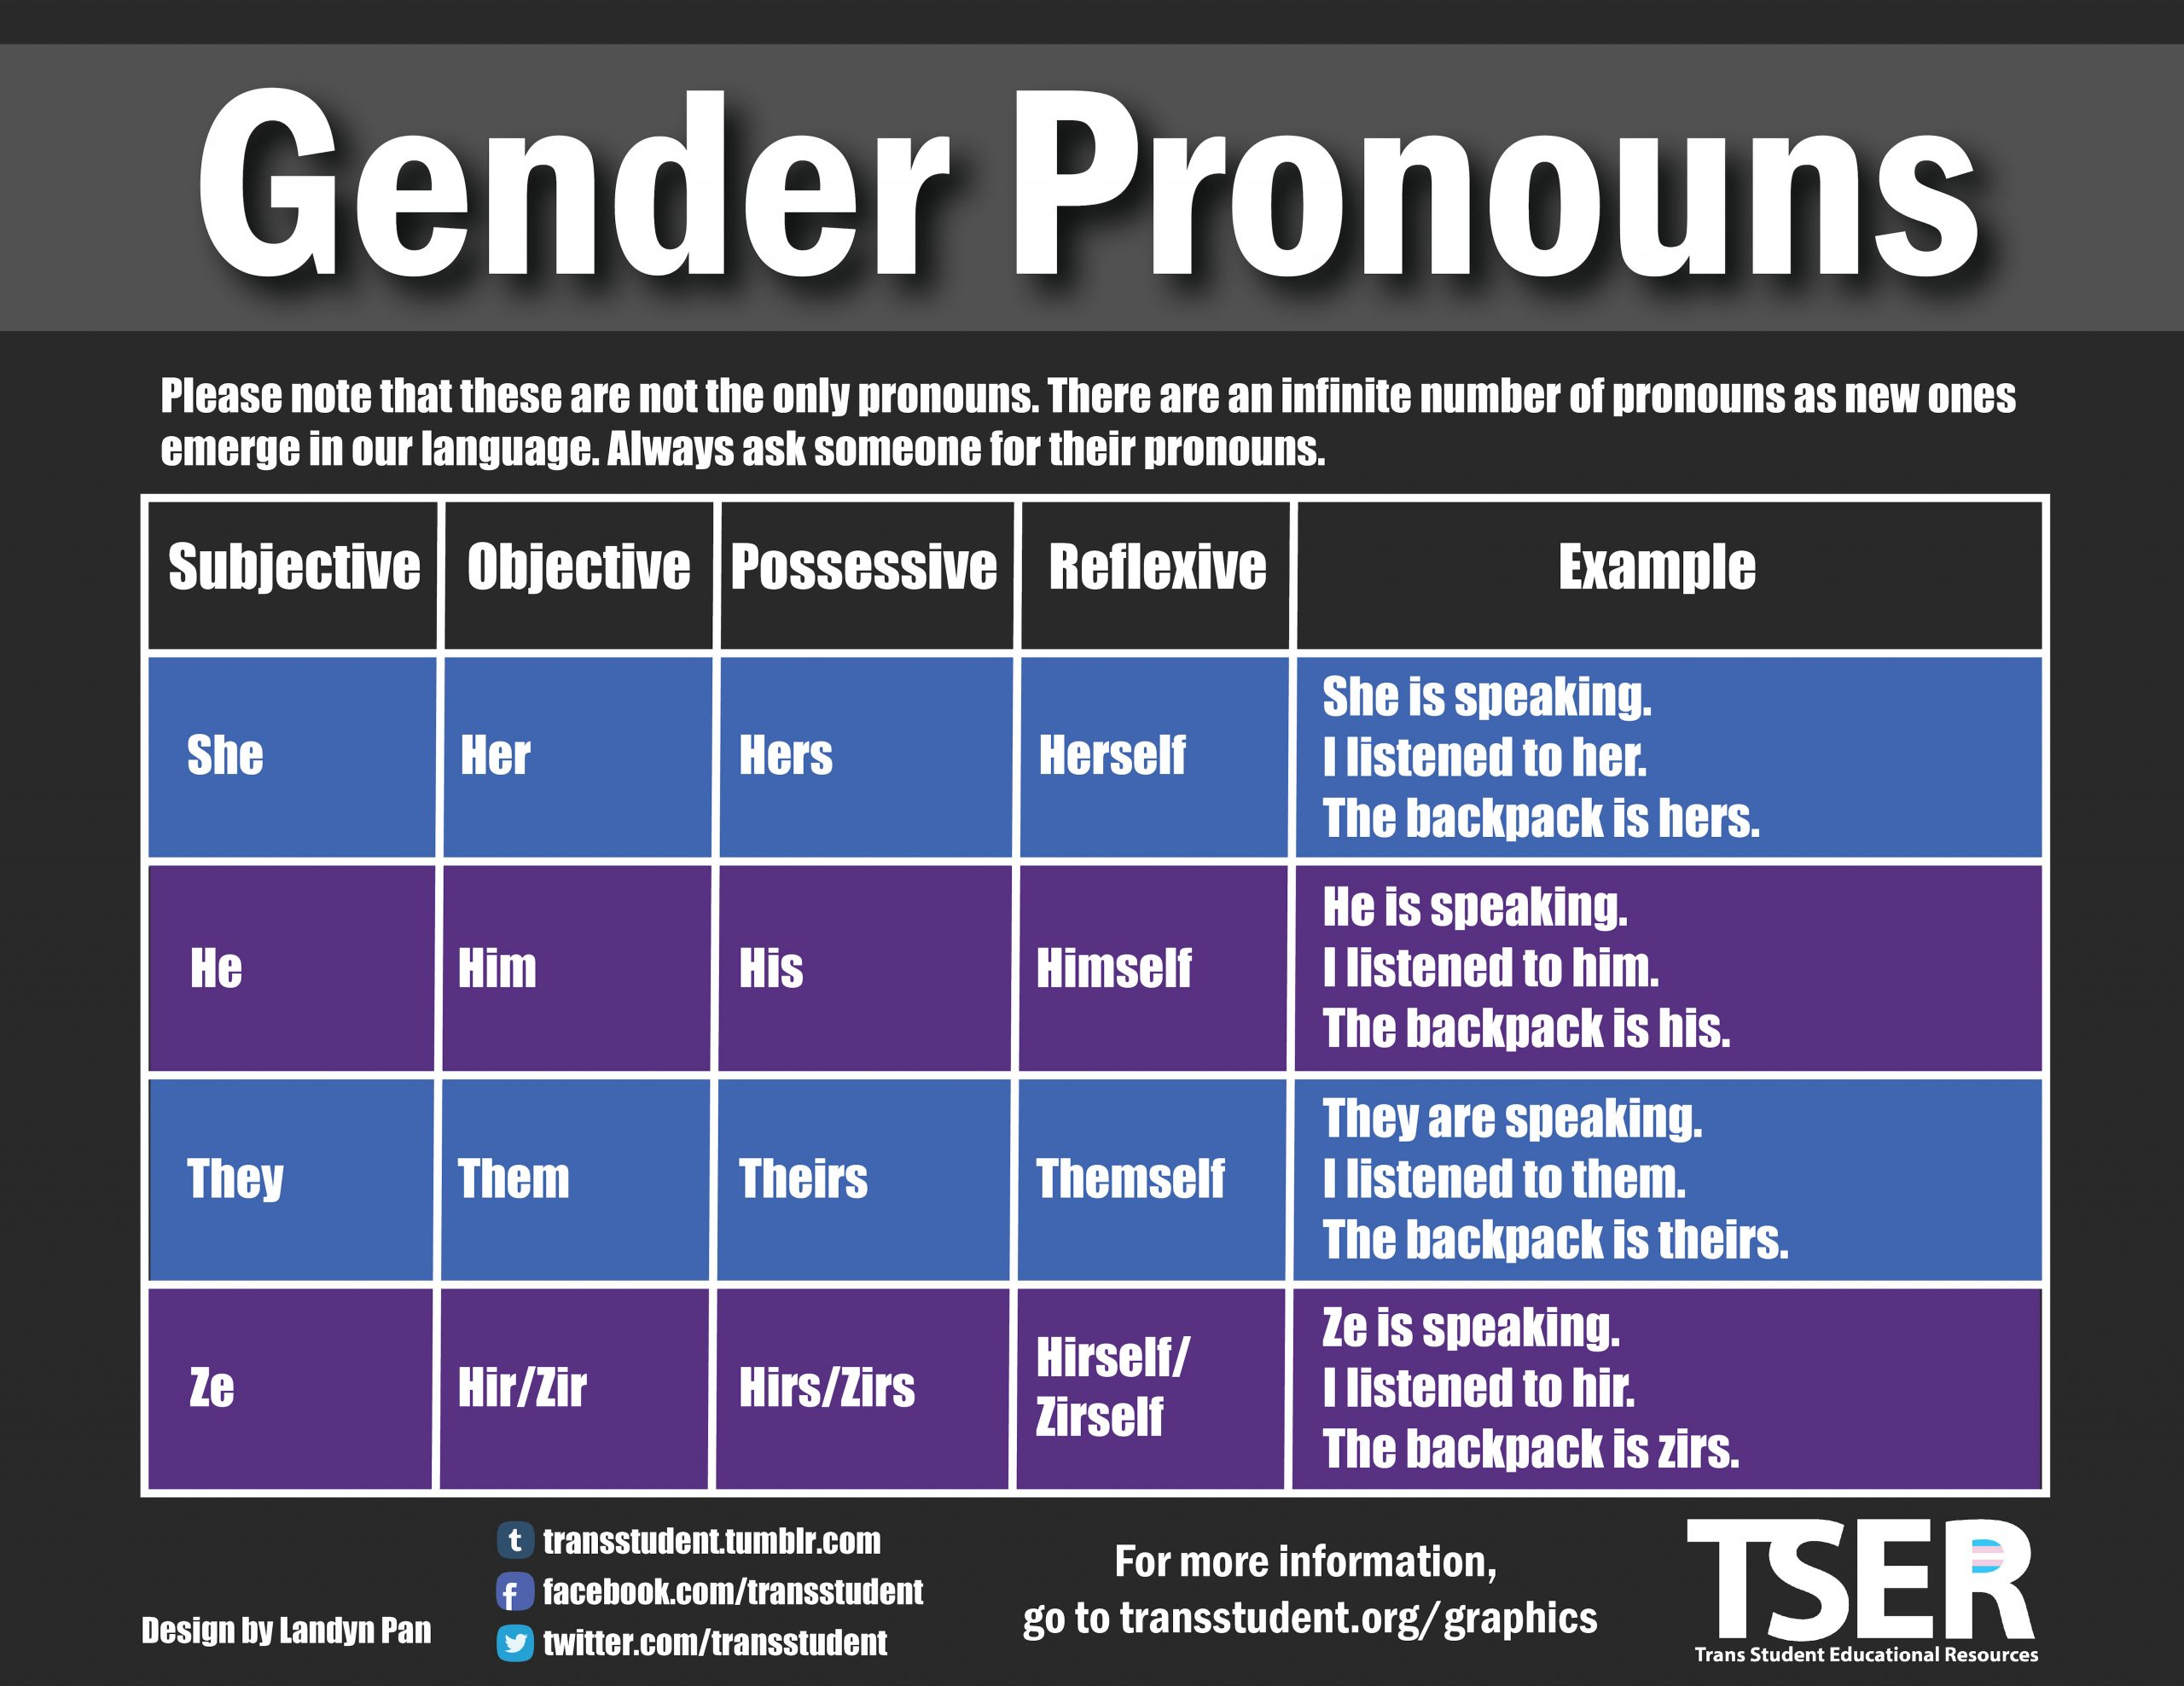 Gender pronouns resource guide